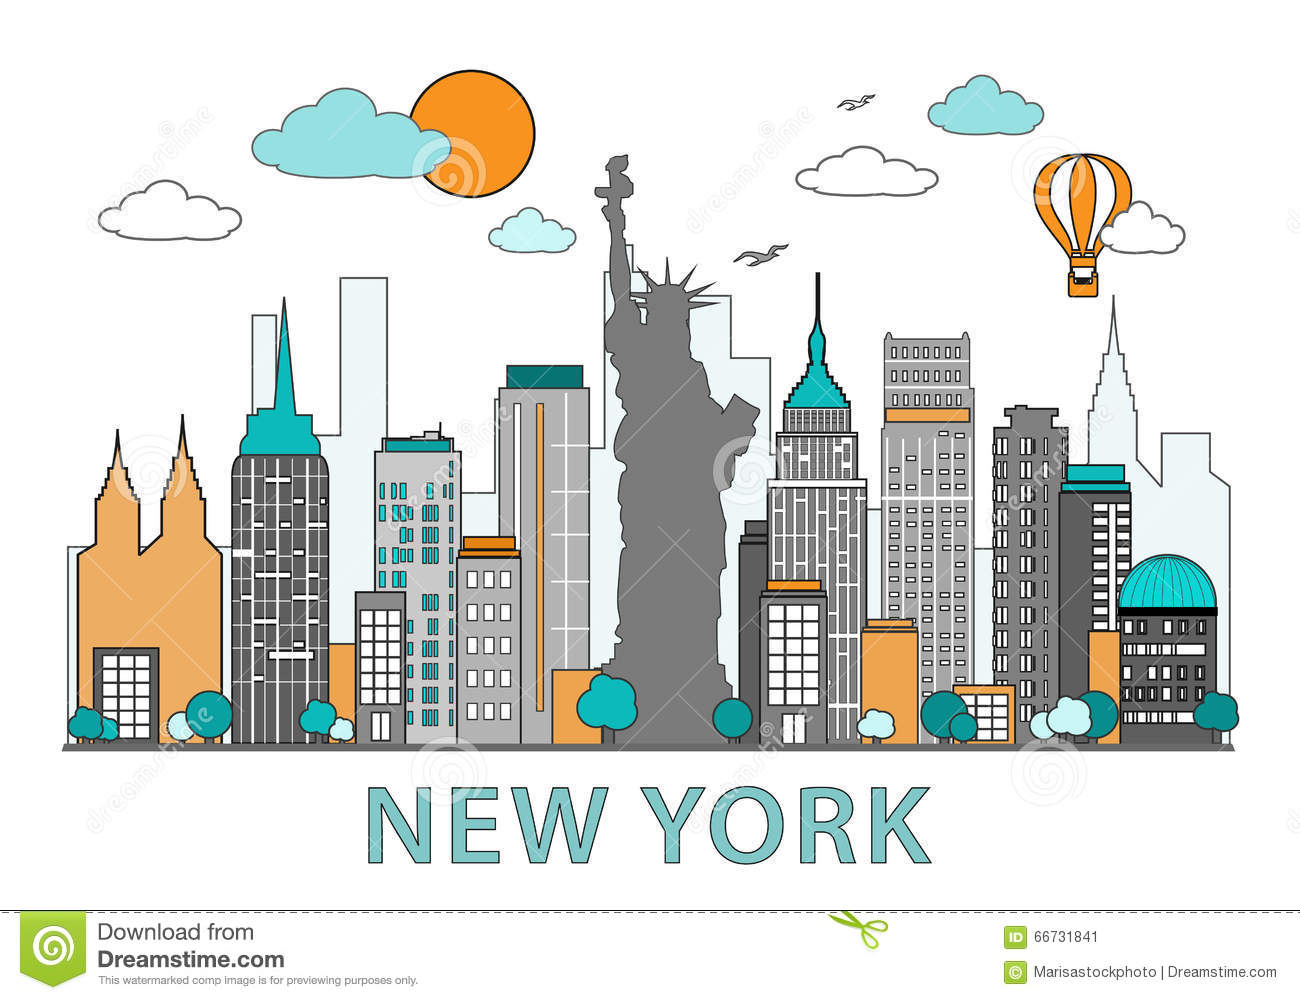 map of ny state with cities with Stock Illustration Thin Line Flat Design New York City Modern New York Skyline Landmarks Vector Illustration Isolated White Background Image66731841 on Hamilton Ontario Map in addition Stock Illustration Thin Line Flat Design New York City Modern New York Skyline Landmarks Vector Illustration Isolated White Background Image66731841 also South Manhattan Map further 417 furthermore 1891 Brooklyn Map Poster New York Map Usa Poster.